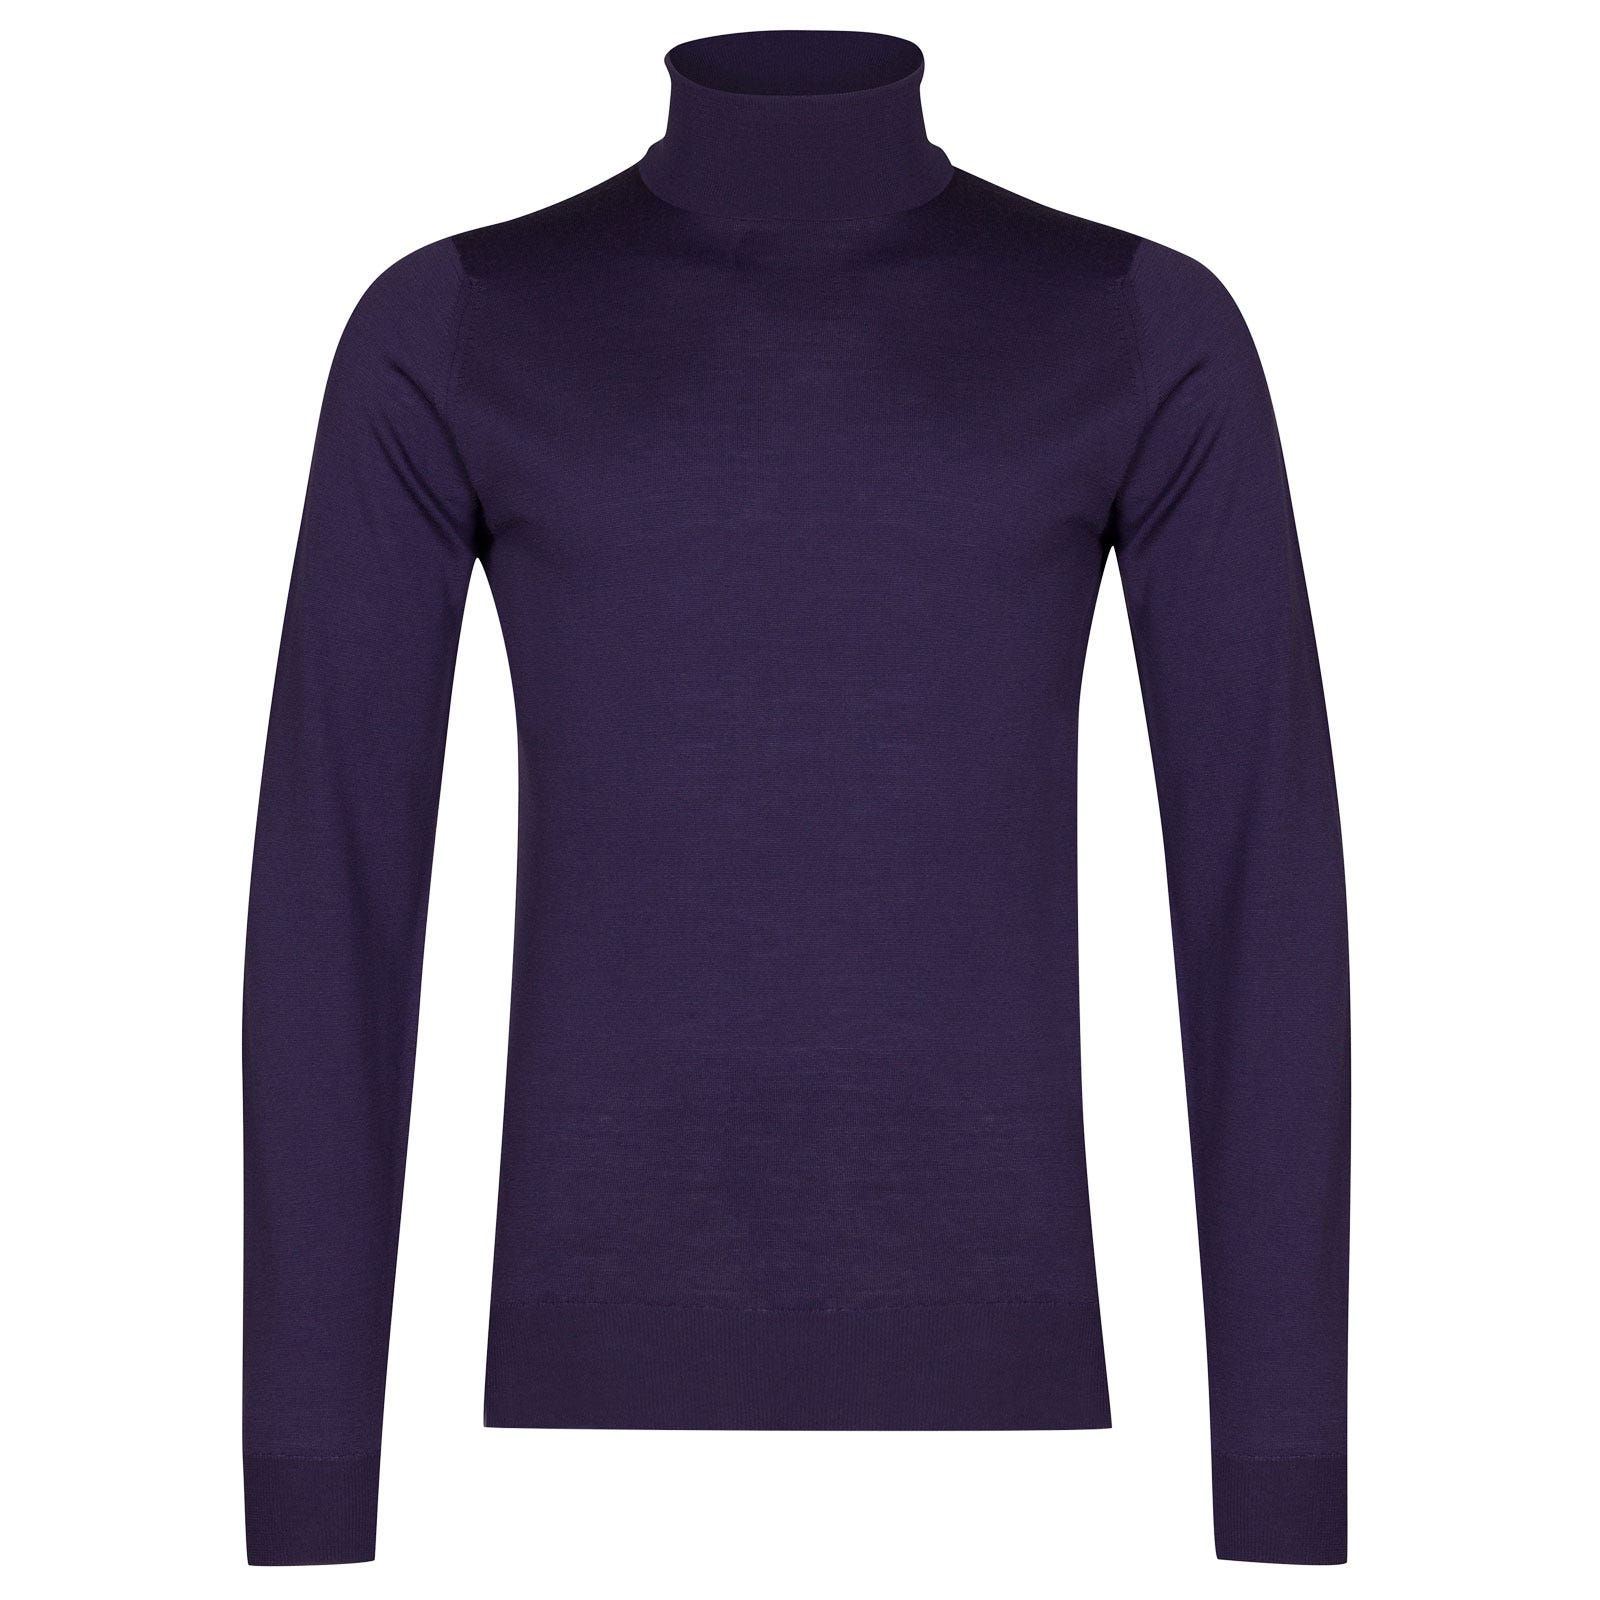 John Smedley cherwell Merino Wool Pullover in Elderberry Purple-L